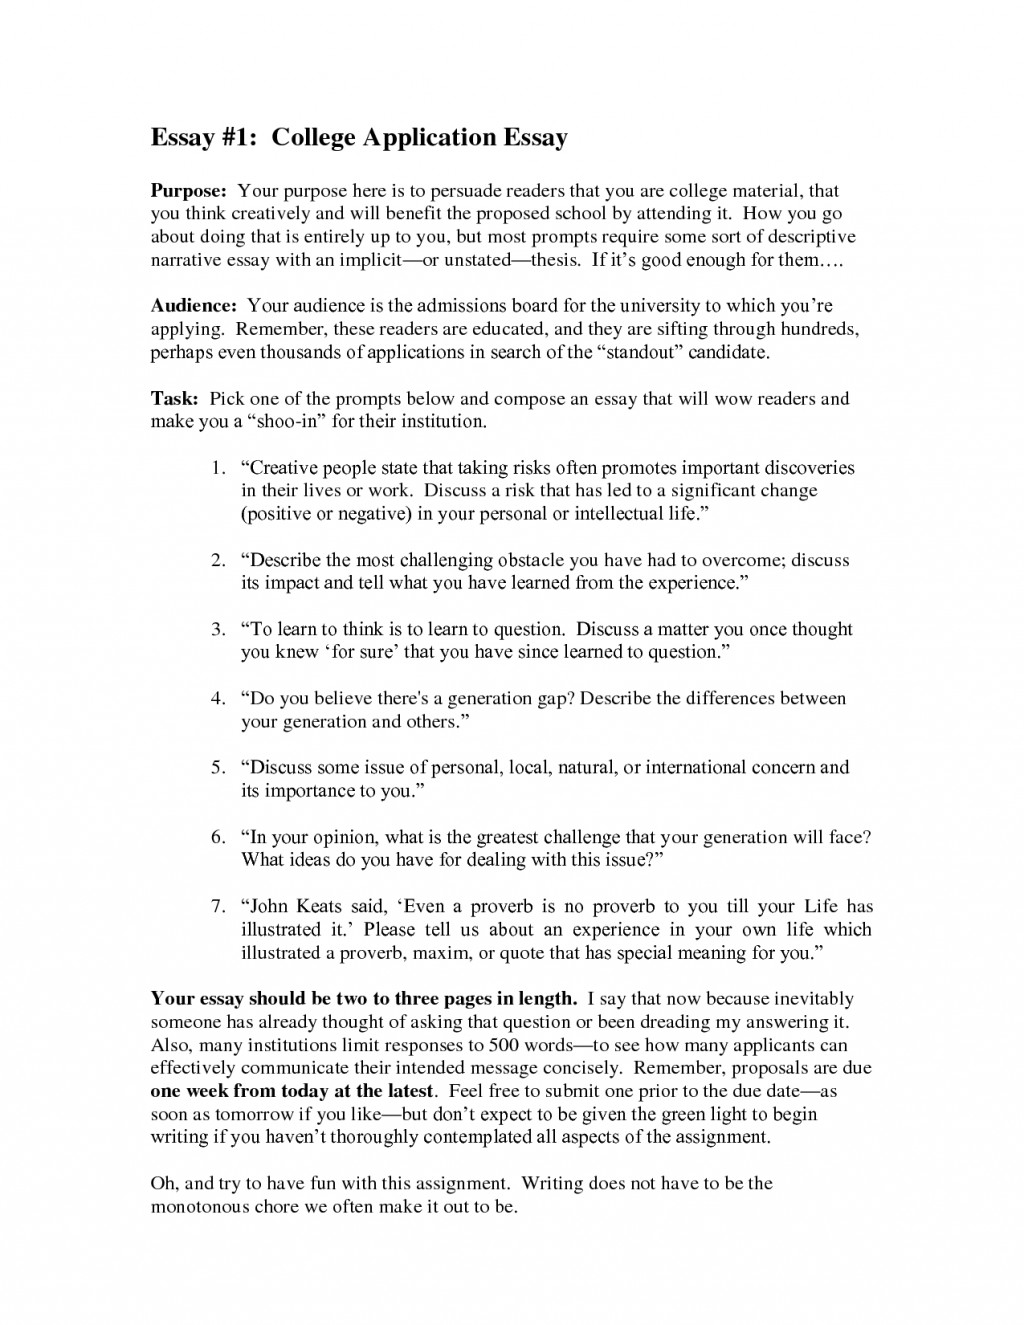 013 College Application Essay How Technology Has Changed Our Lives Awesome Pdf On For The Worst Large